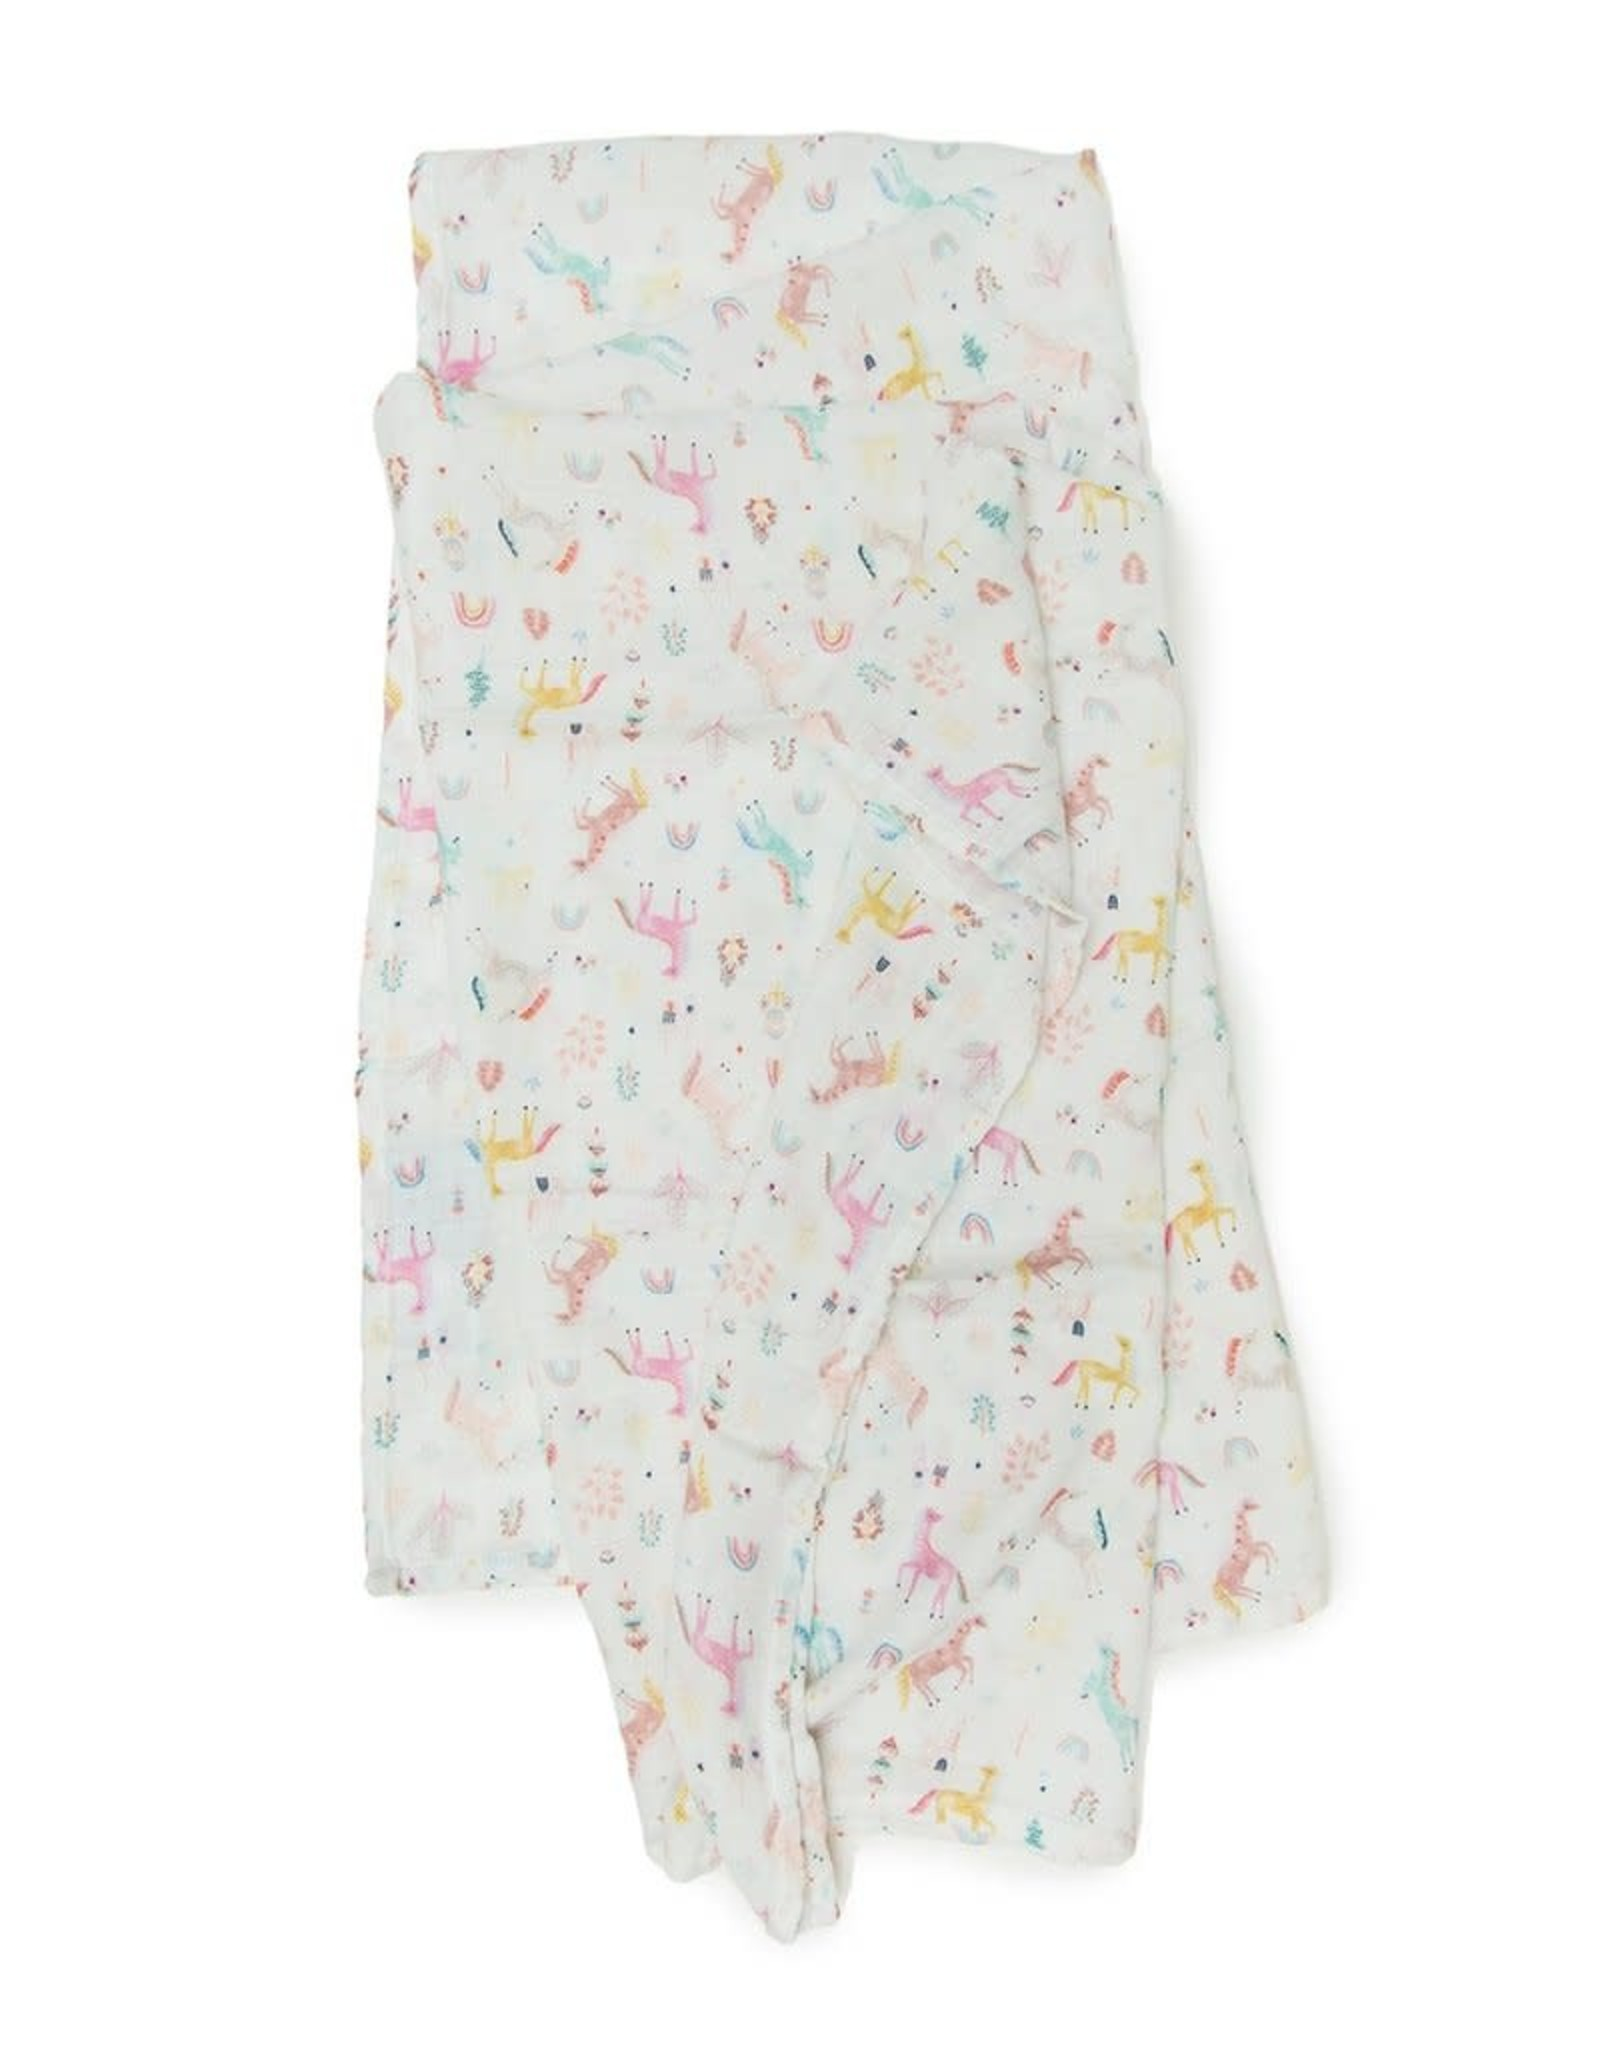 Loulou Lollipop Muslin - Unicorn Dream